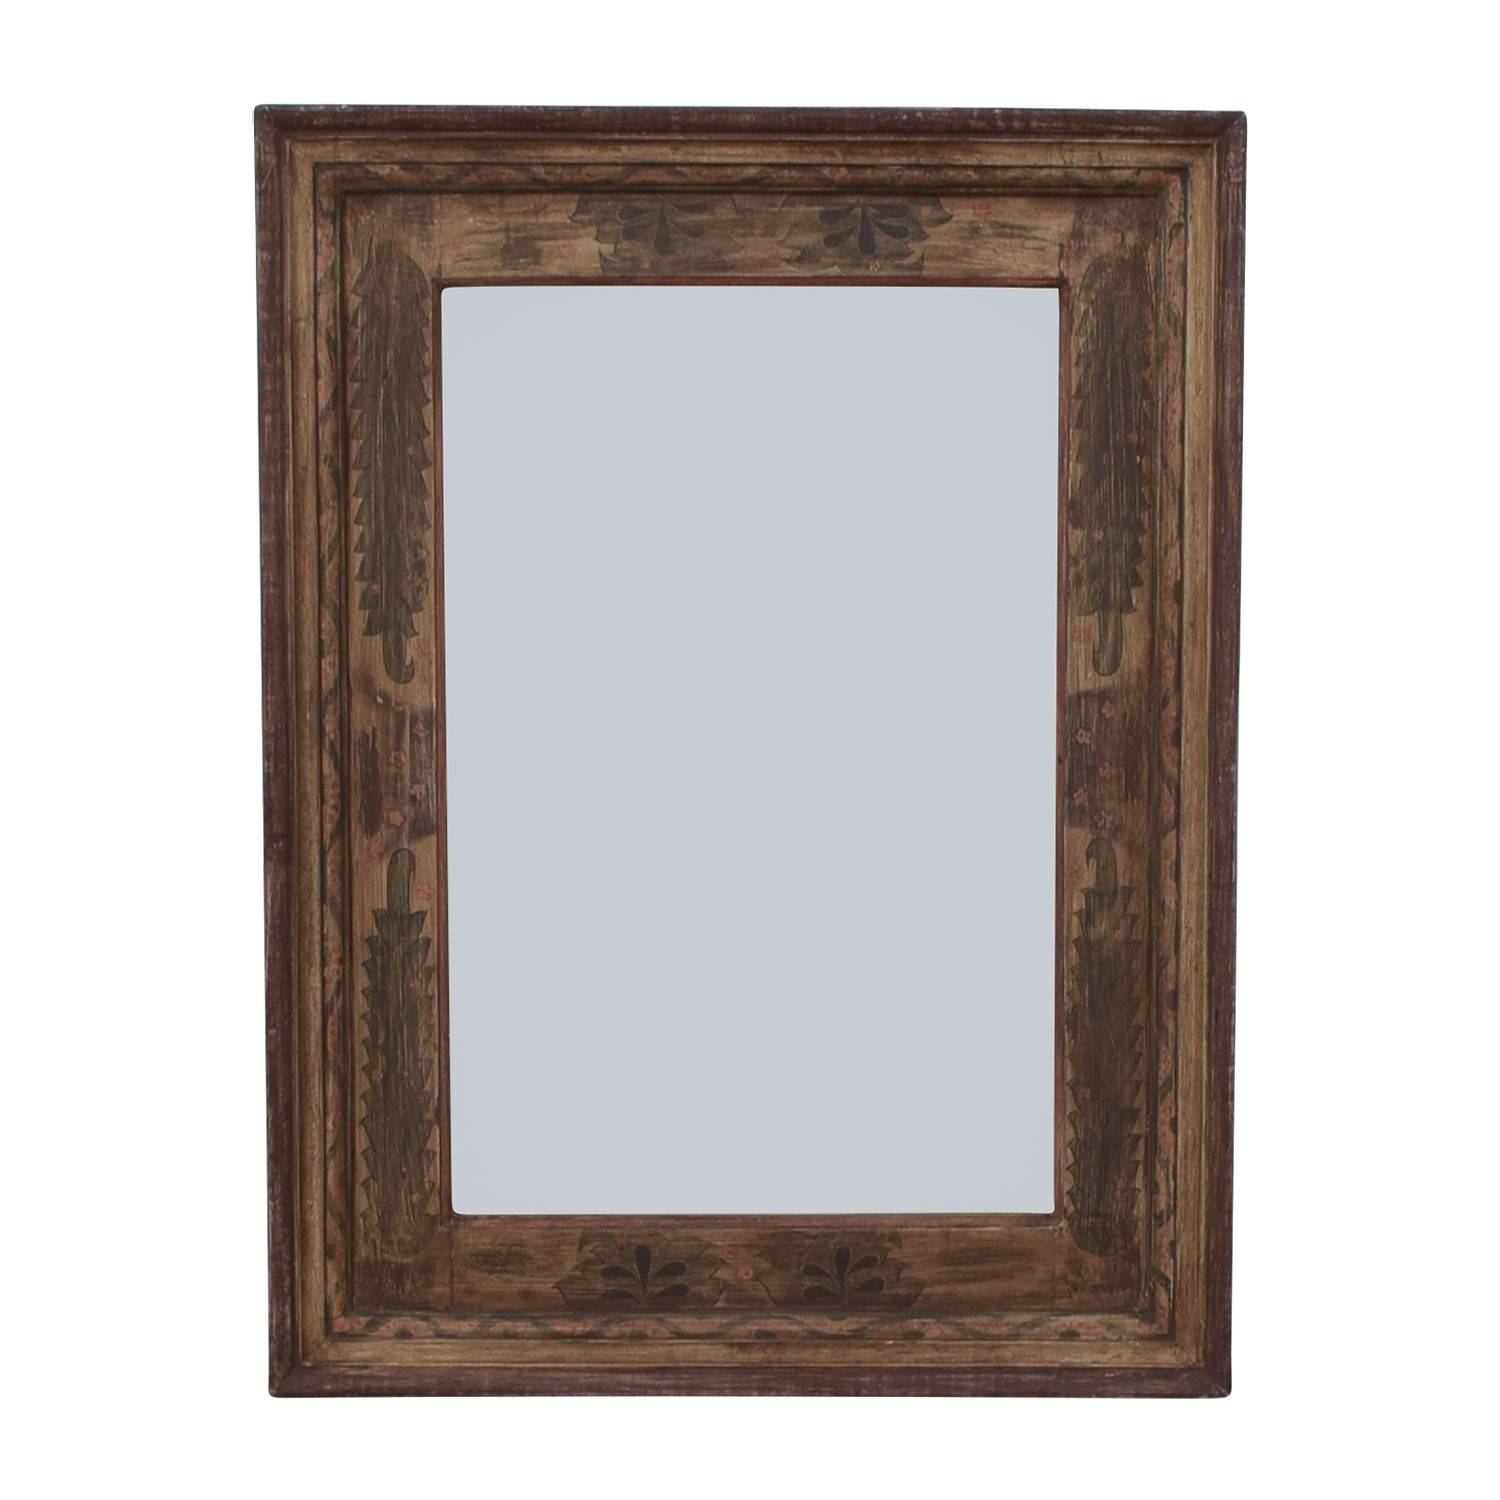 56% Off   Pottery Barn Pottery Barn Painted Wooden Mirror / Decor In Wooden Mirrors (Photo 1 of 15)